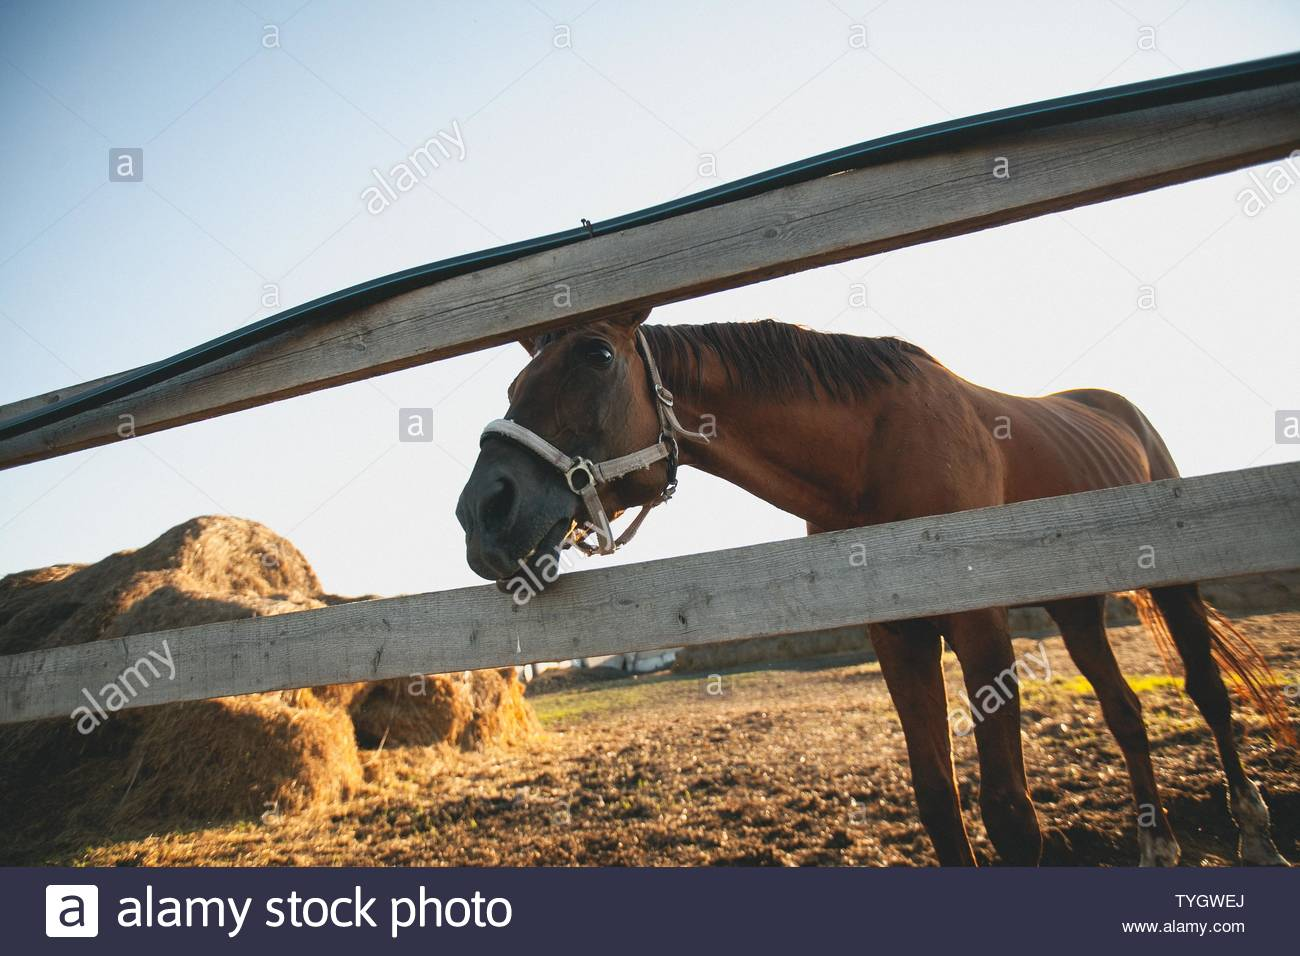 Picture of: Brown Horse In A Fenced Pen On The Farm Over The Fence Looking Into The Camera Young Curious Mare On A Sunny Day Near Bales Of Hay Stock Photo 257912106 Alamy